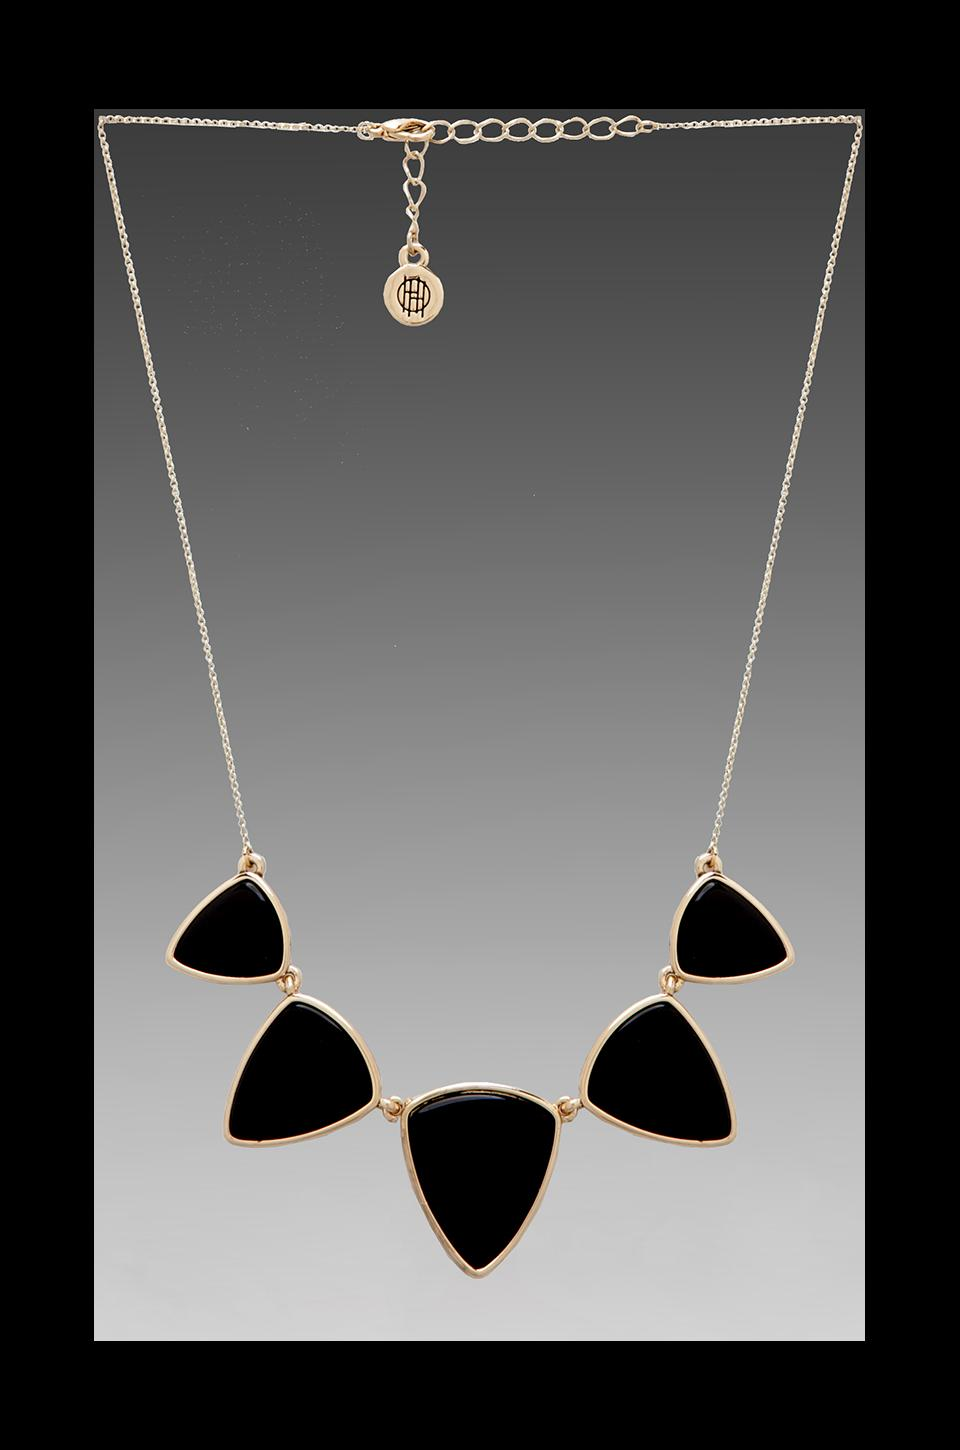 House of Harlow 1960 House of Harlow Polyphony Necklace in Gold